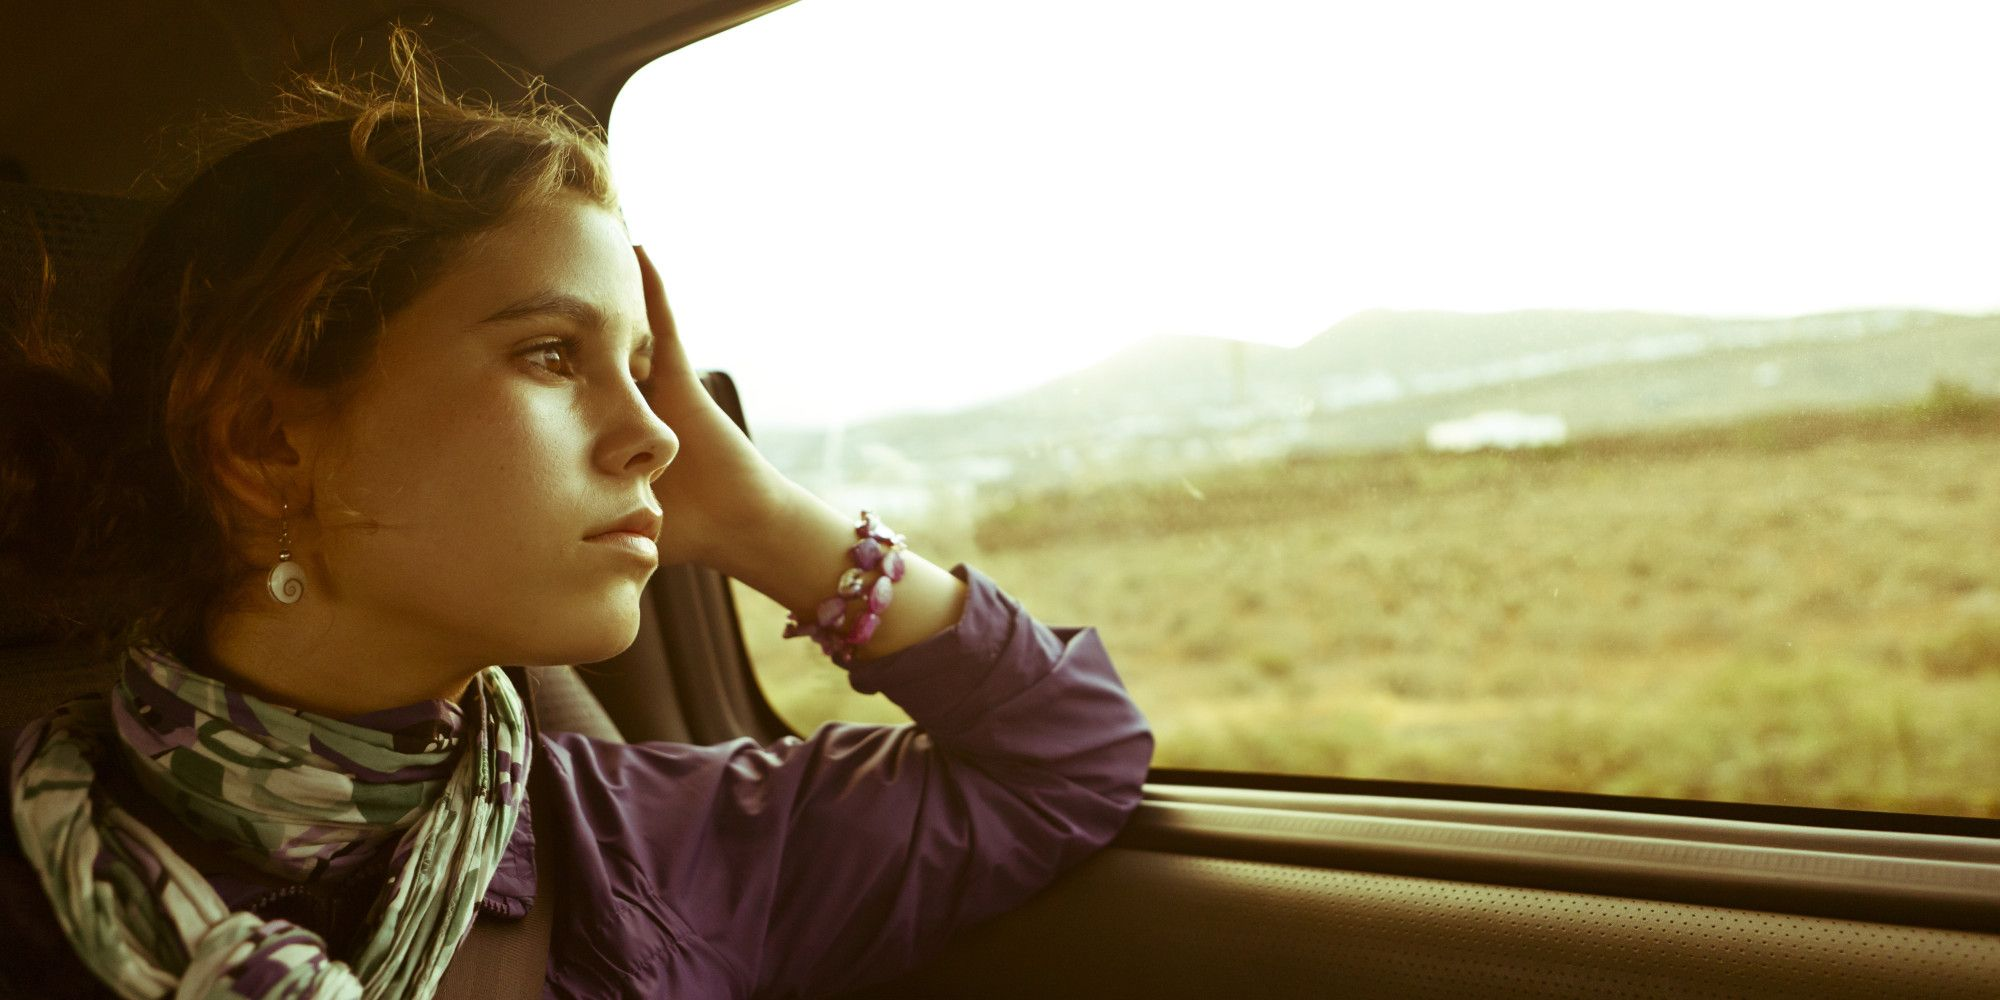 Image result for sad girl looking out car window